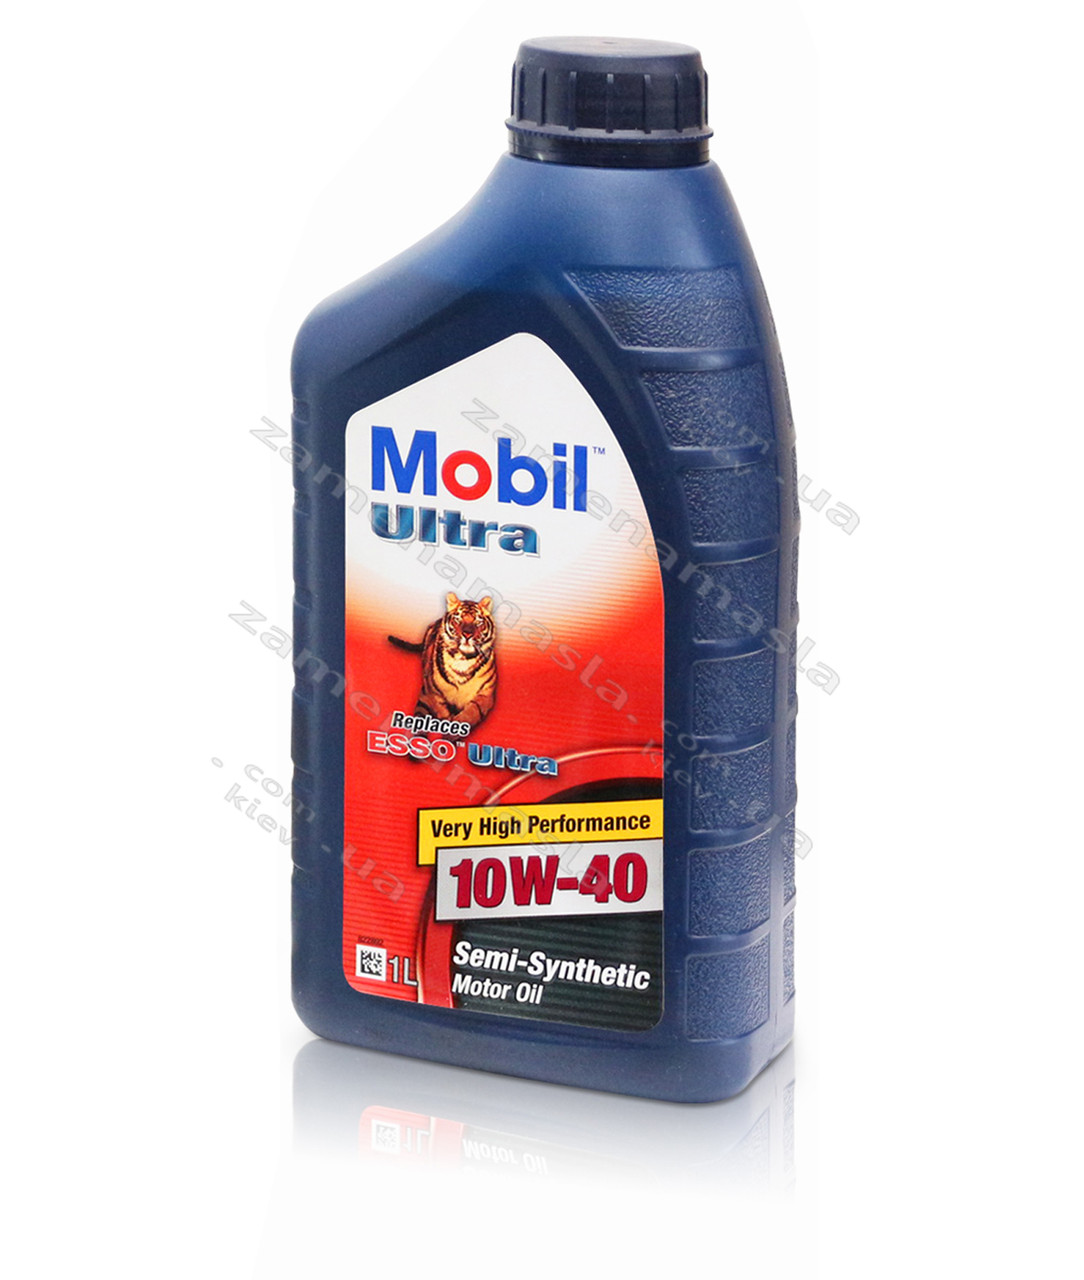 Mobil Ultra 10W40 1л - моторное масло